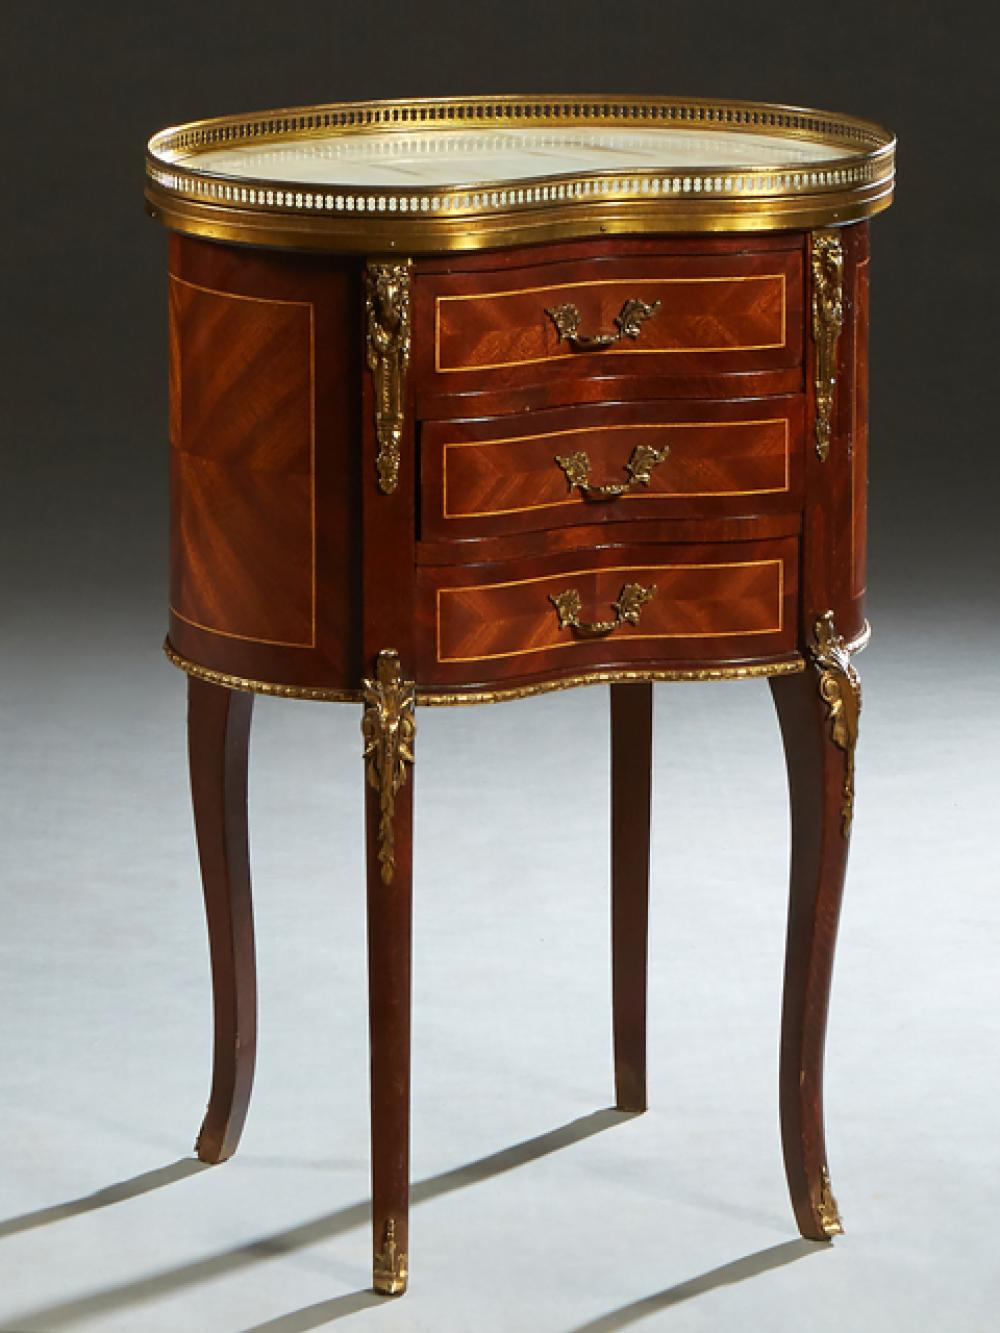 French Louis XV Style Ormolu Mounted Inlaid Mahogany Marble Top Nightstand, 20th c., the brass galleried kidney shaped figured white...